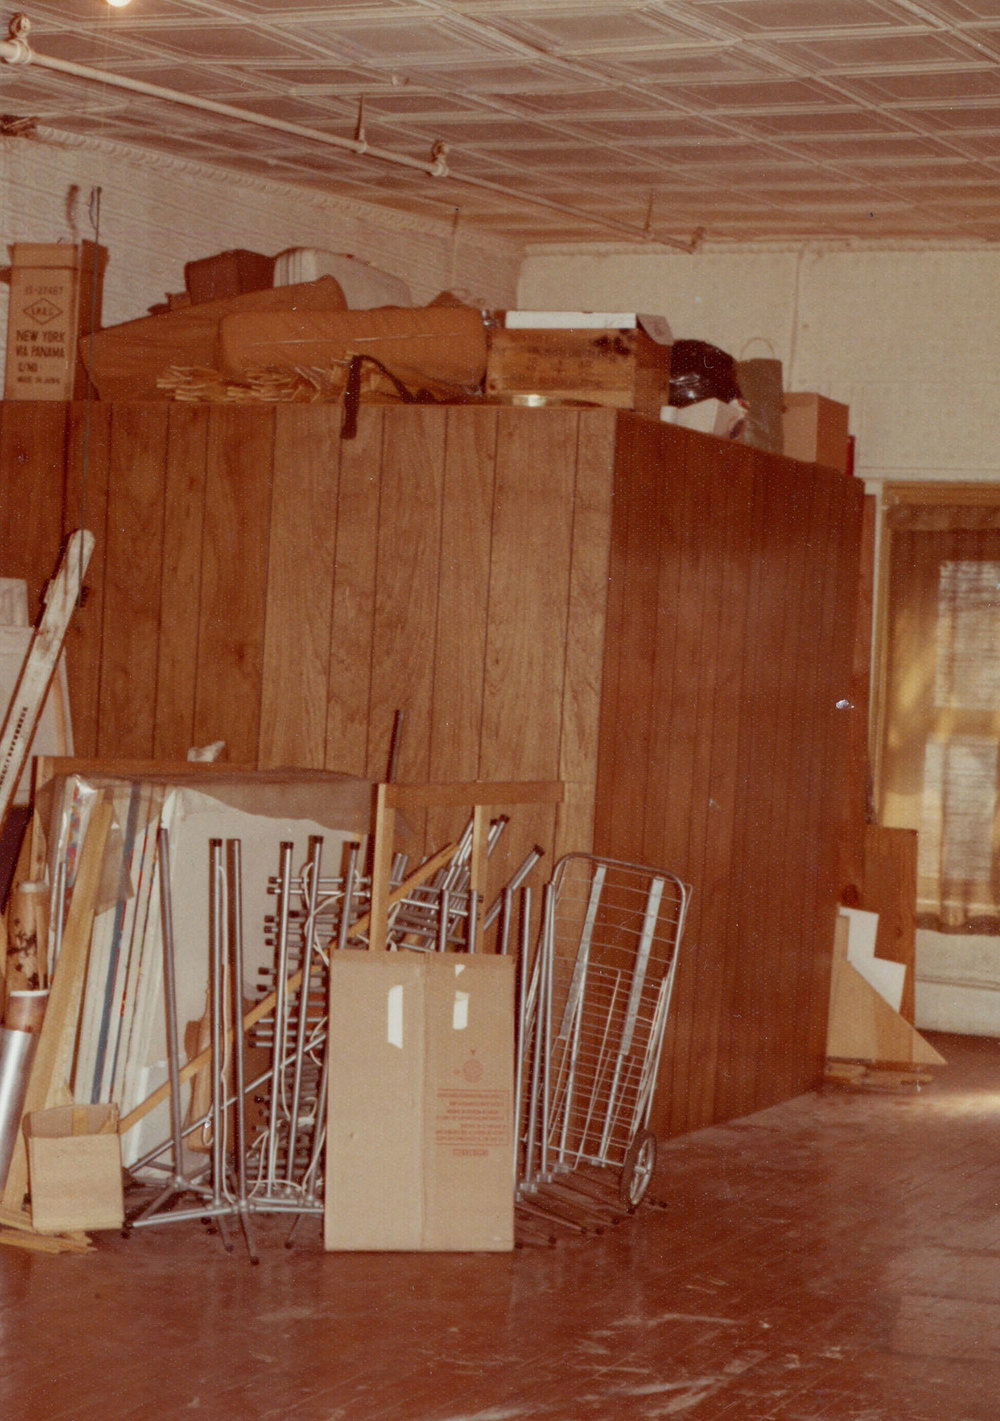 """I took a picture of this cluttered cube in Marc's left becuase I built it 3 or 4 years ago and lived here using it as a bedroom for about a year"" - Tom Wolf, 1974"